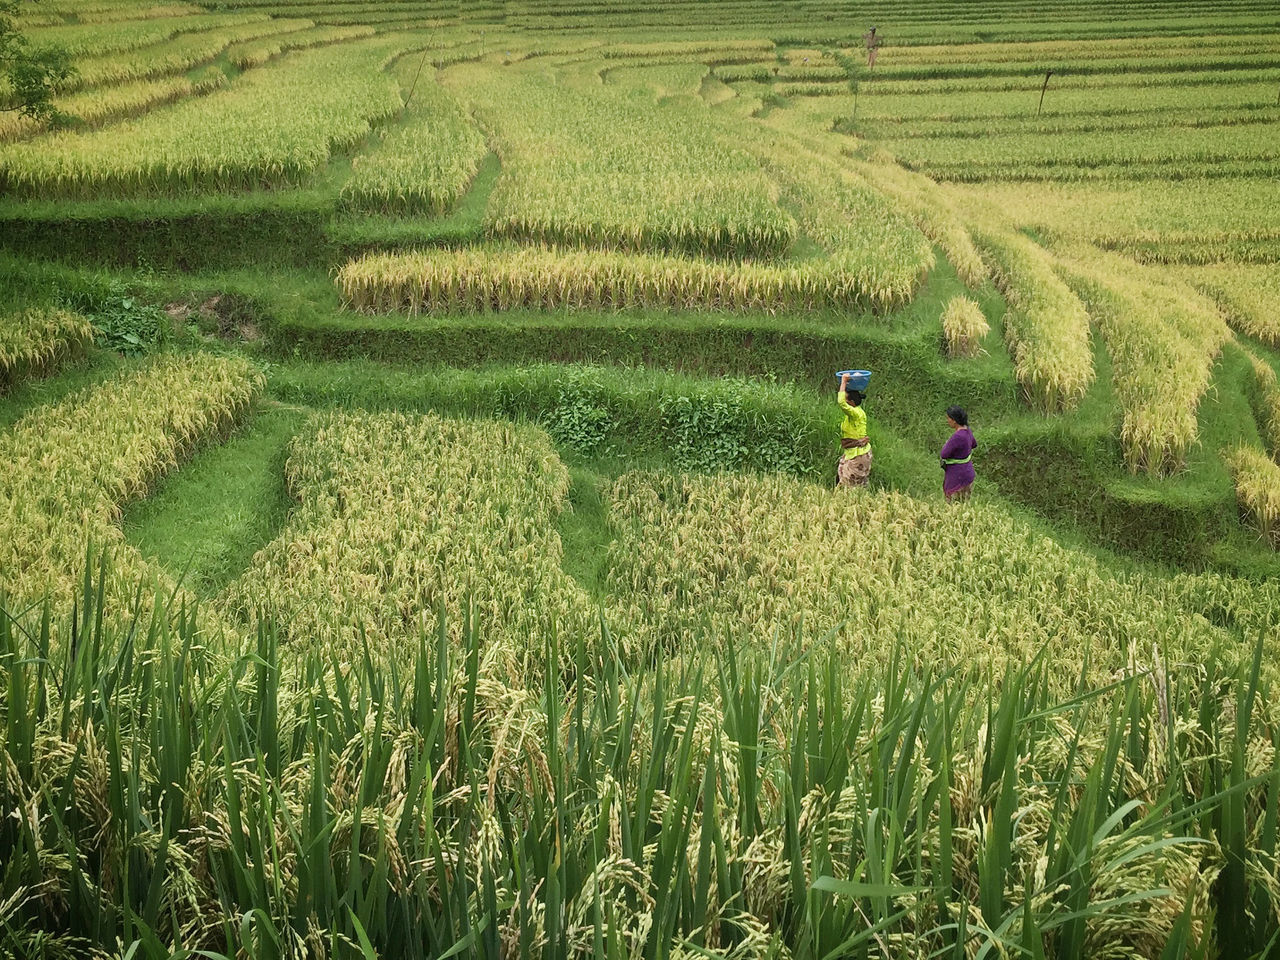 High angle view of women walking on rice field